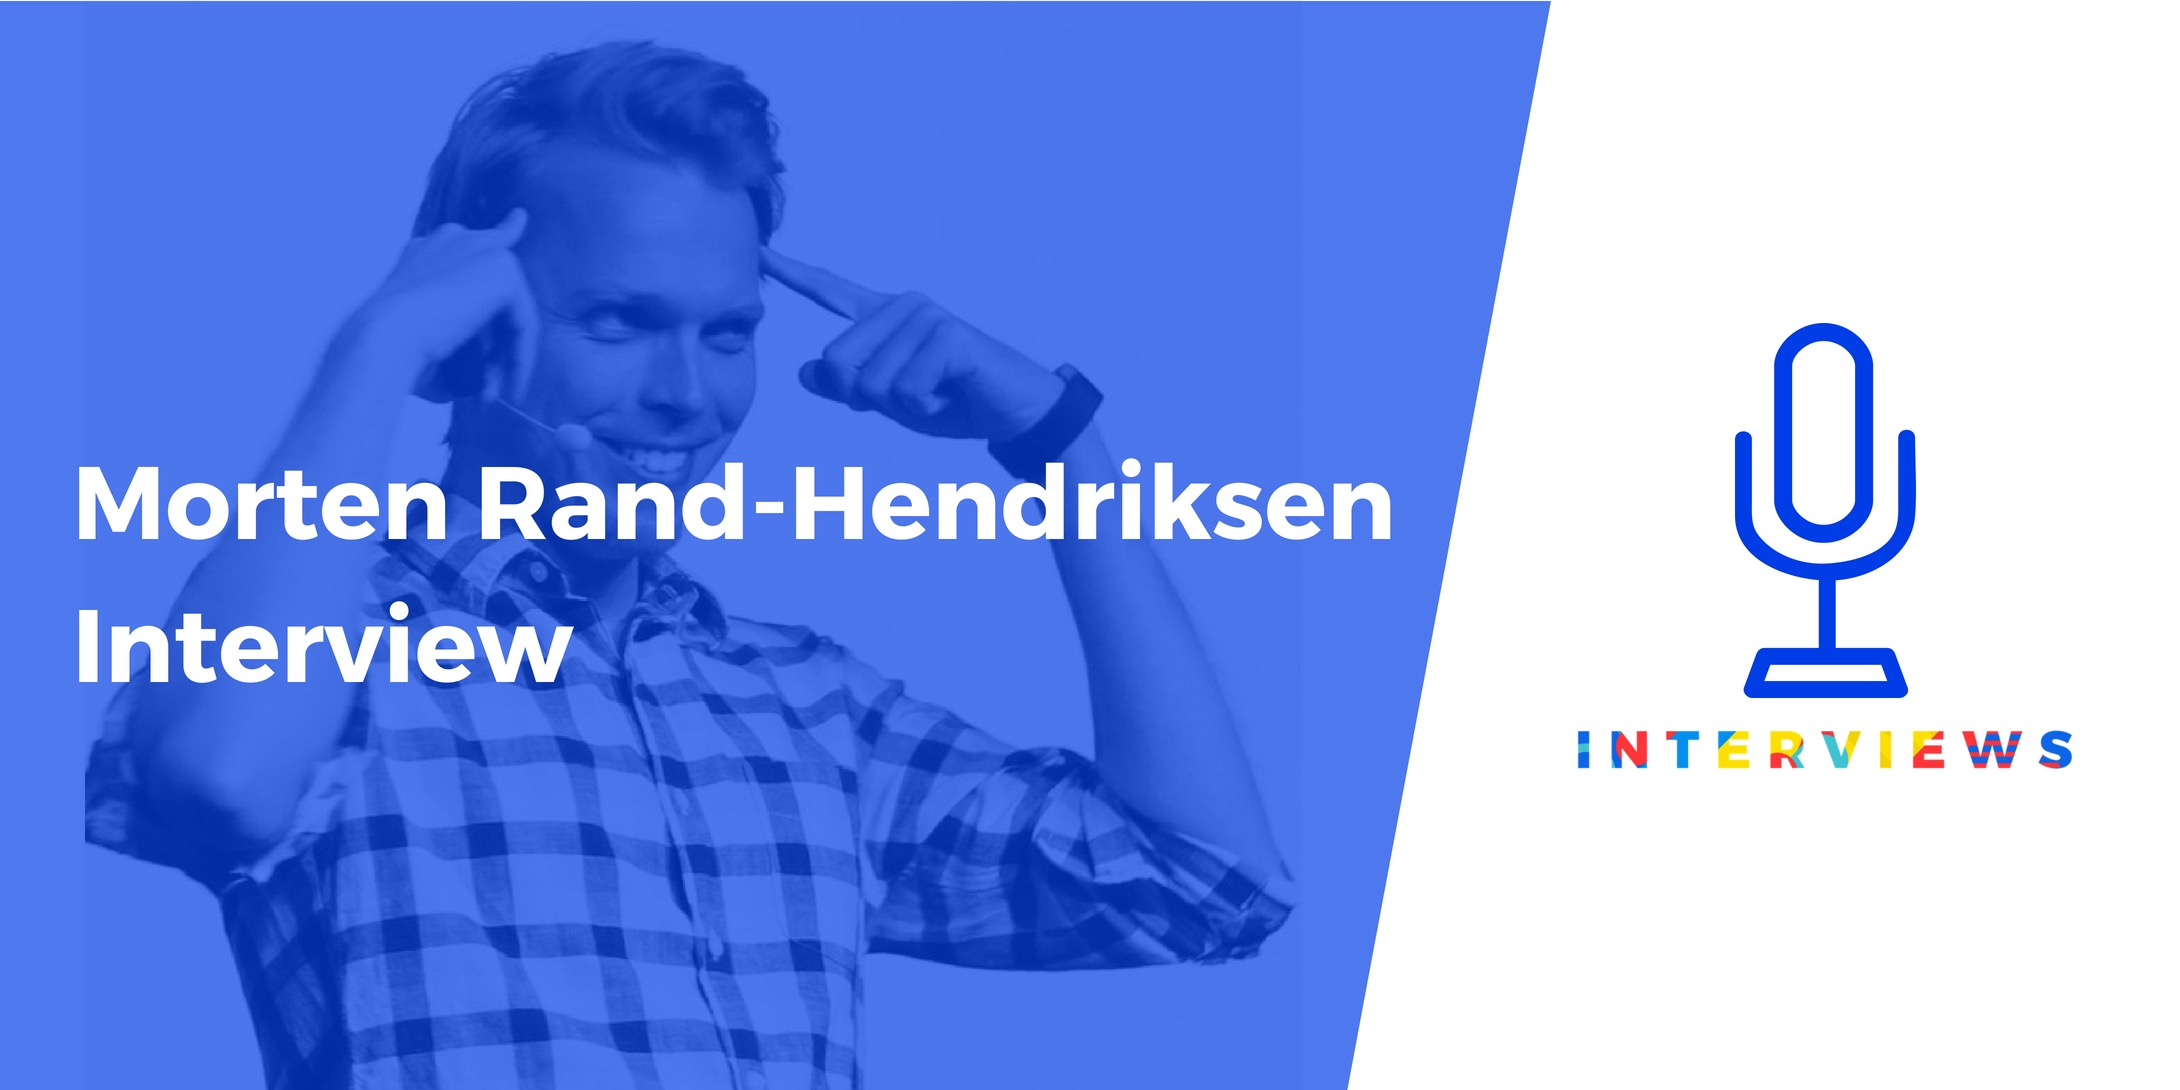 Morten Rand-Hendriksen interview